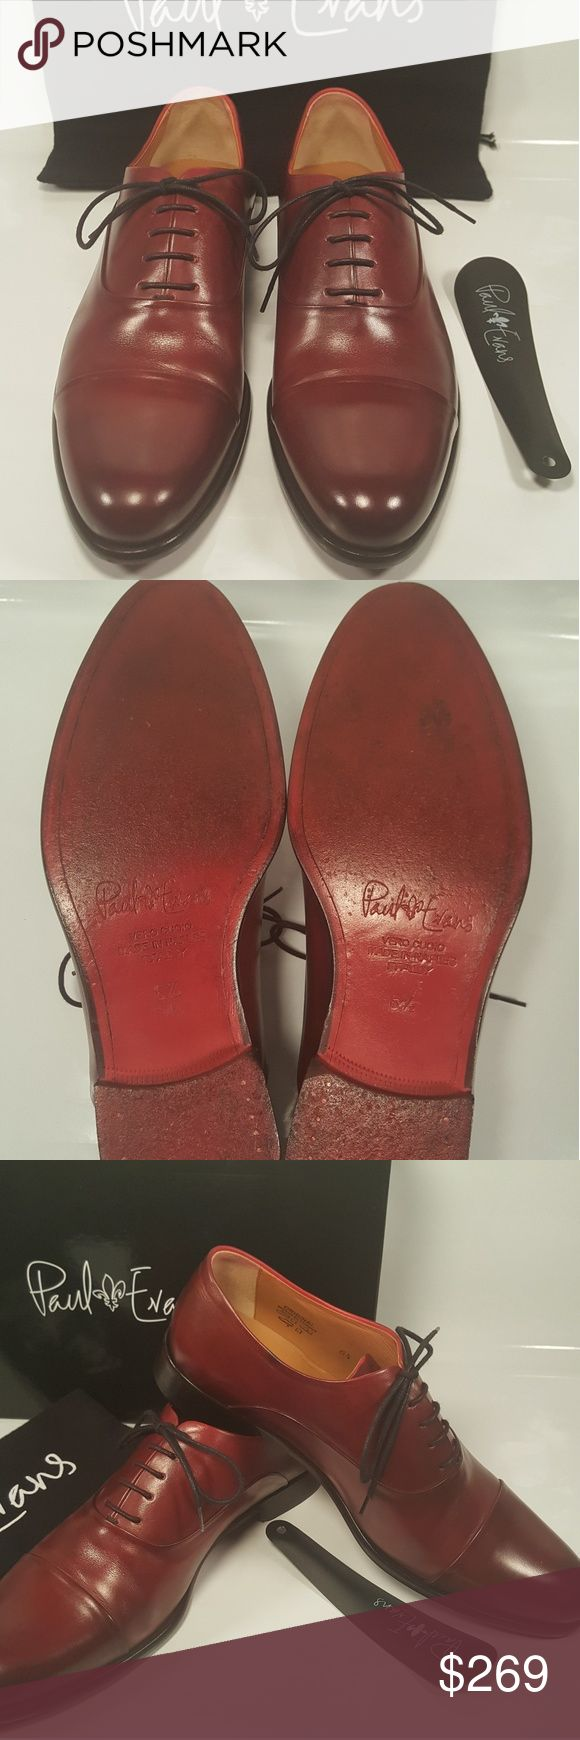 PAUL EVANS OXFORD SHOES MEN'S SIZE 7.5 Pre owned but in very nice condition Paul Evans Cap Toe Oxfords Italian Leather Shoes size 7.5  (Color Oxblood ) include original box, dust bag and shoe horn. Paul Evans Shoes Oxfords & Derbys